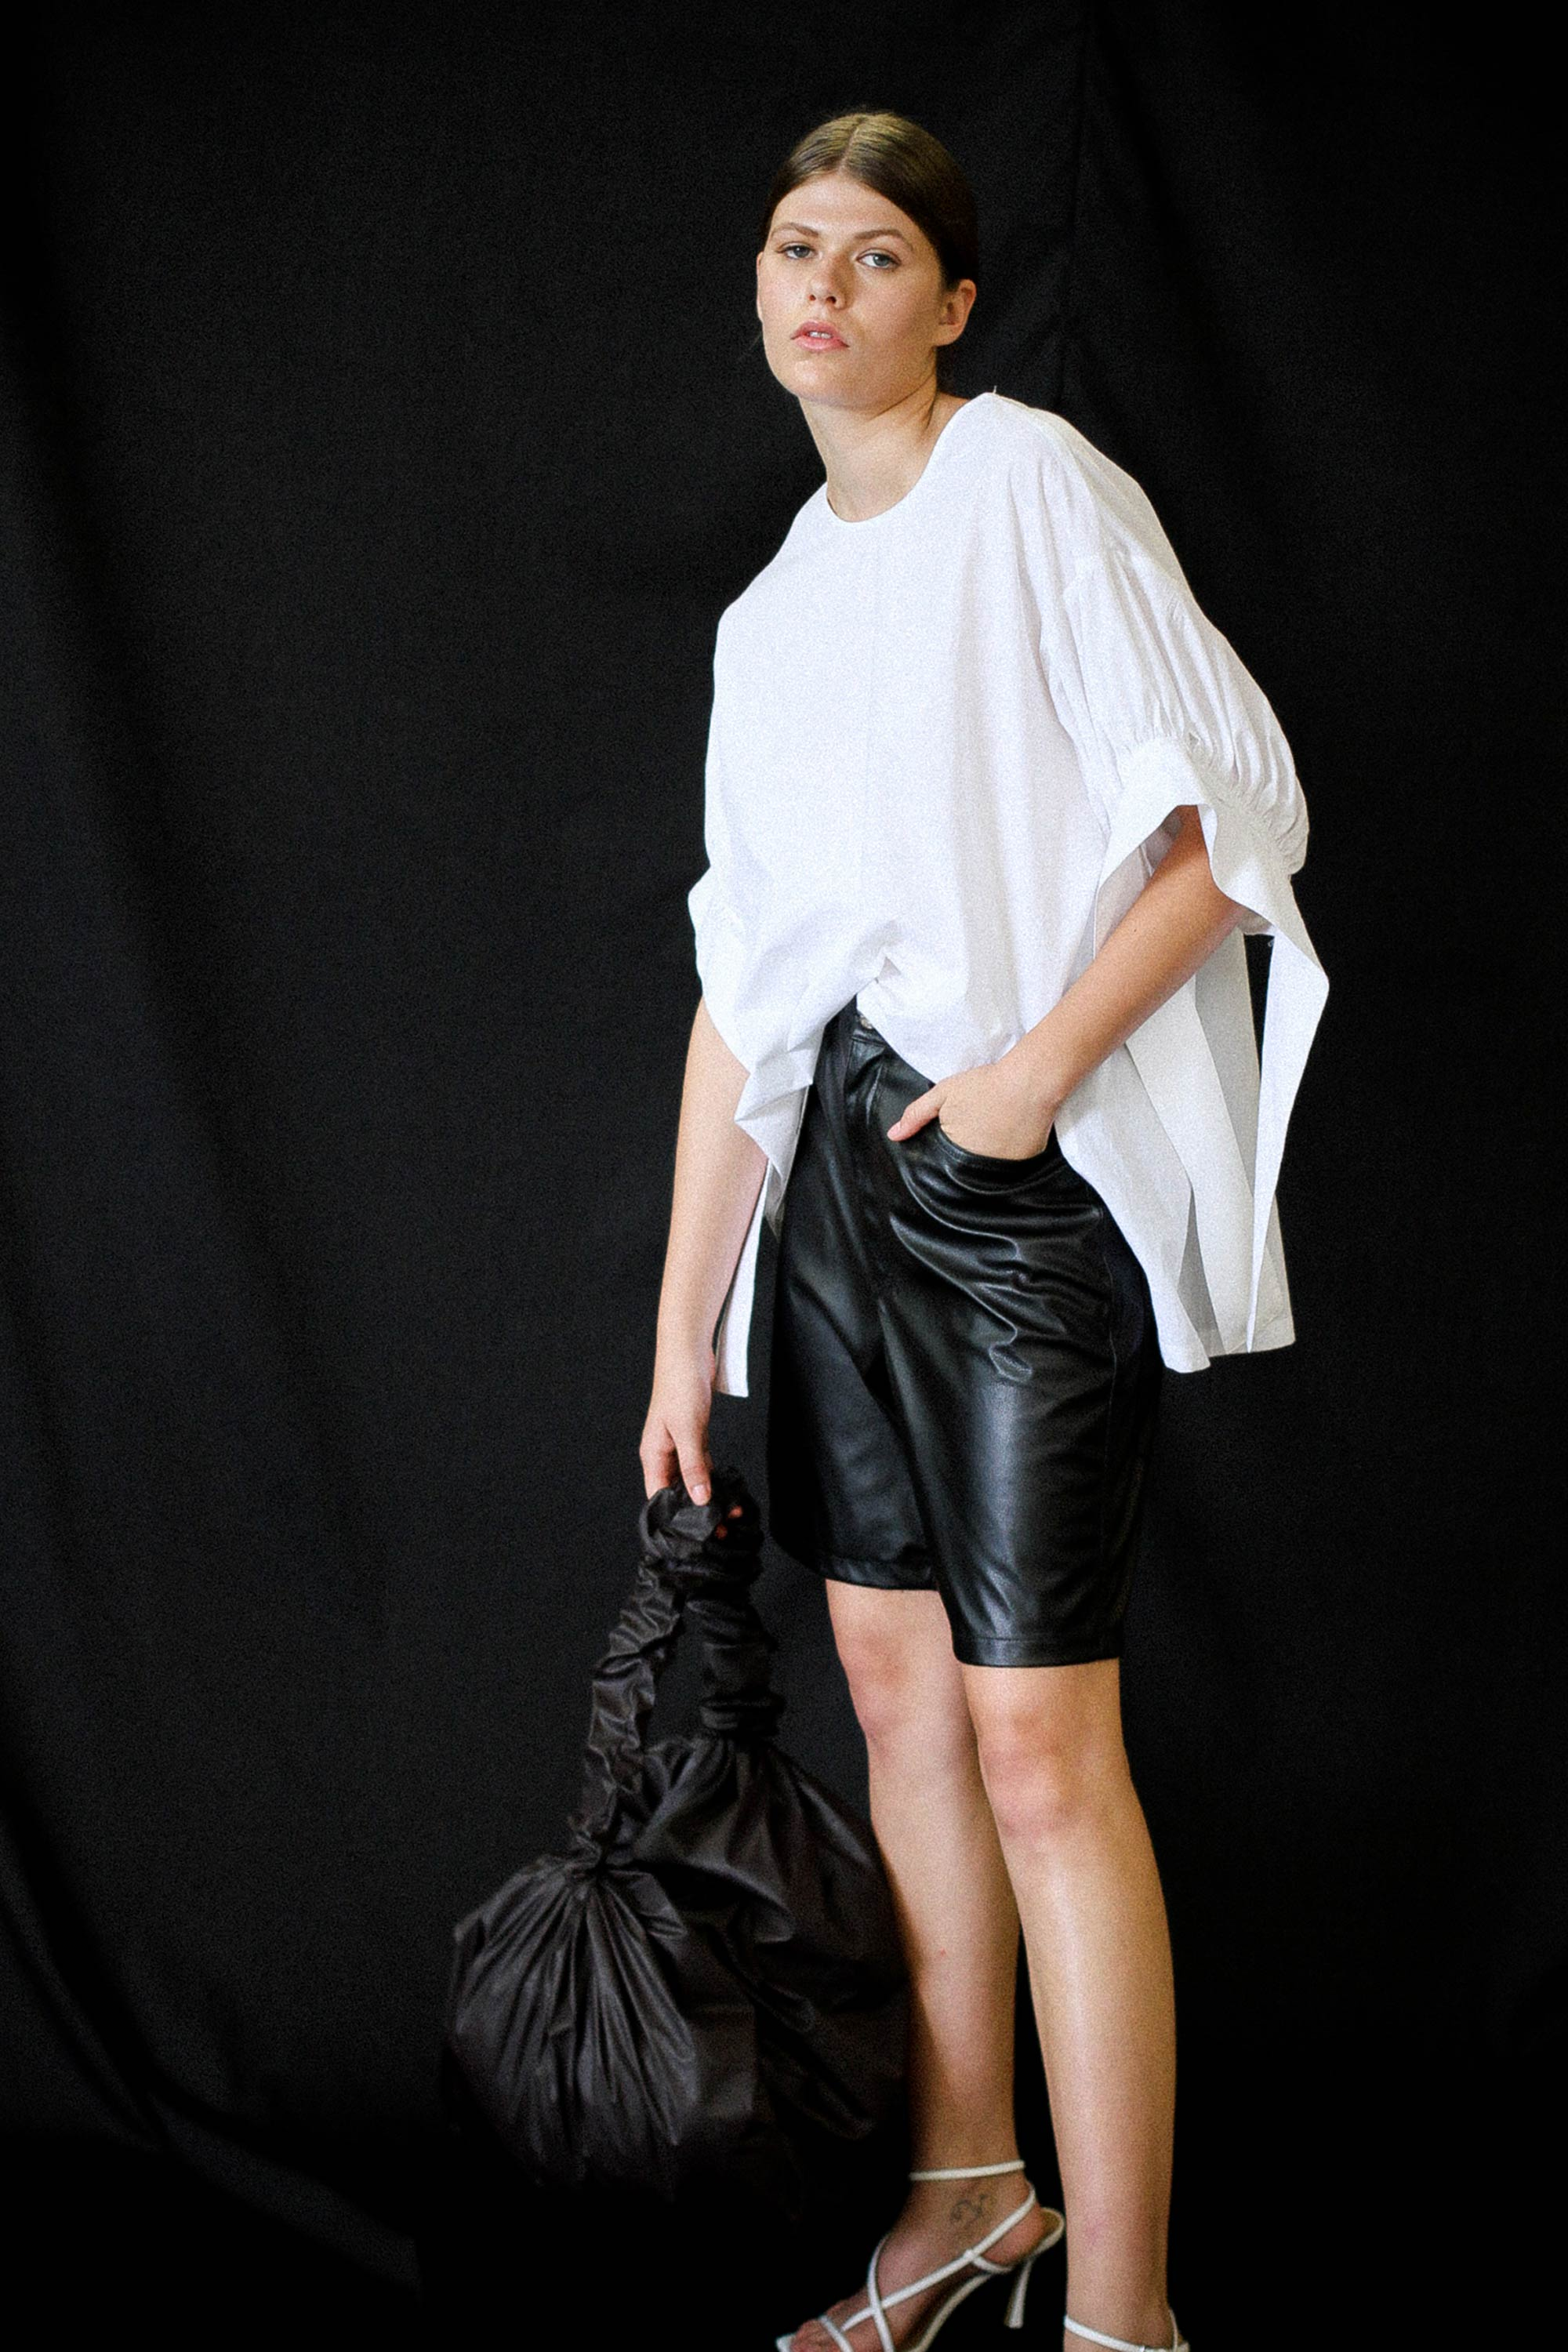 Julia Top Ricochet SS20 Collection NZ Sustainable Fashion Design